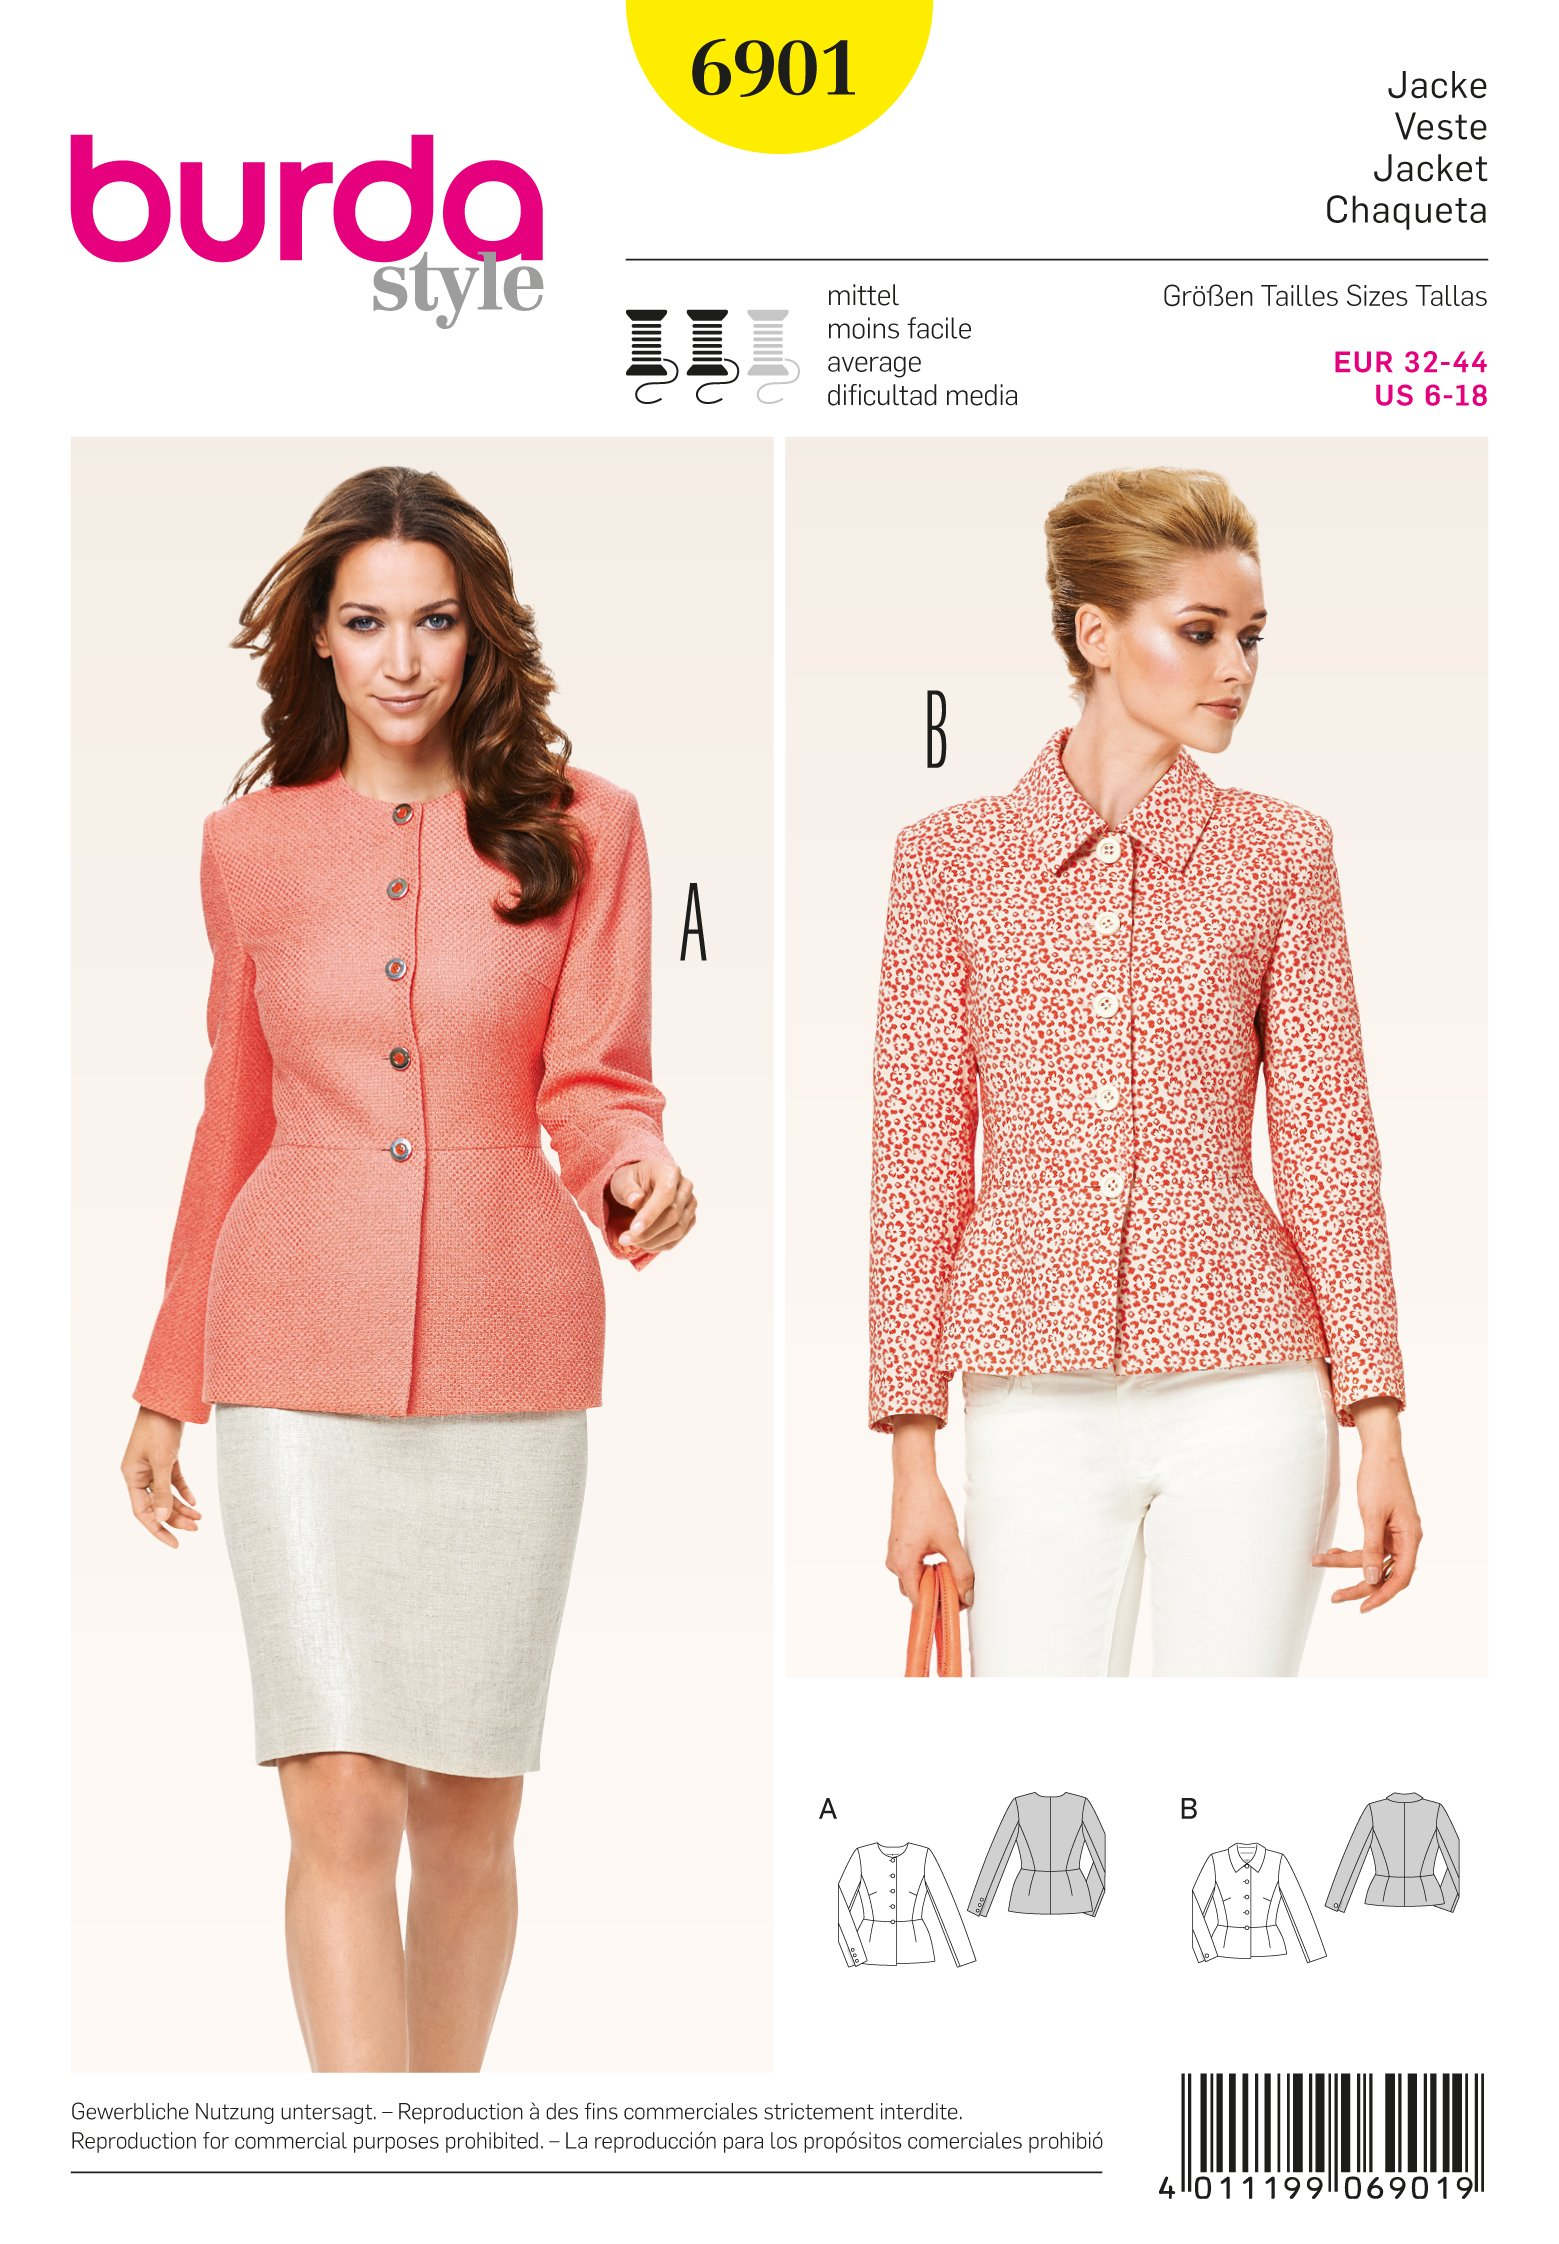 Burda Jackets, Coats, Vests 6901